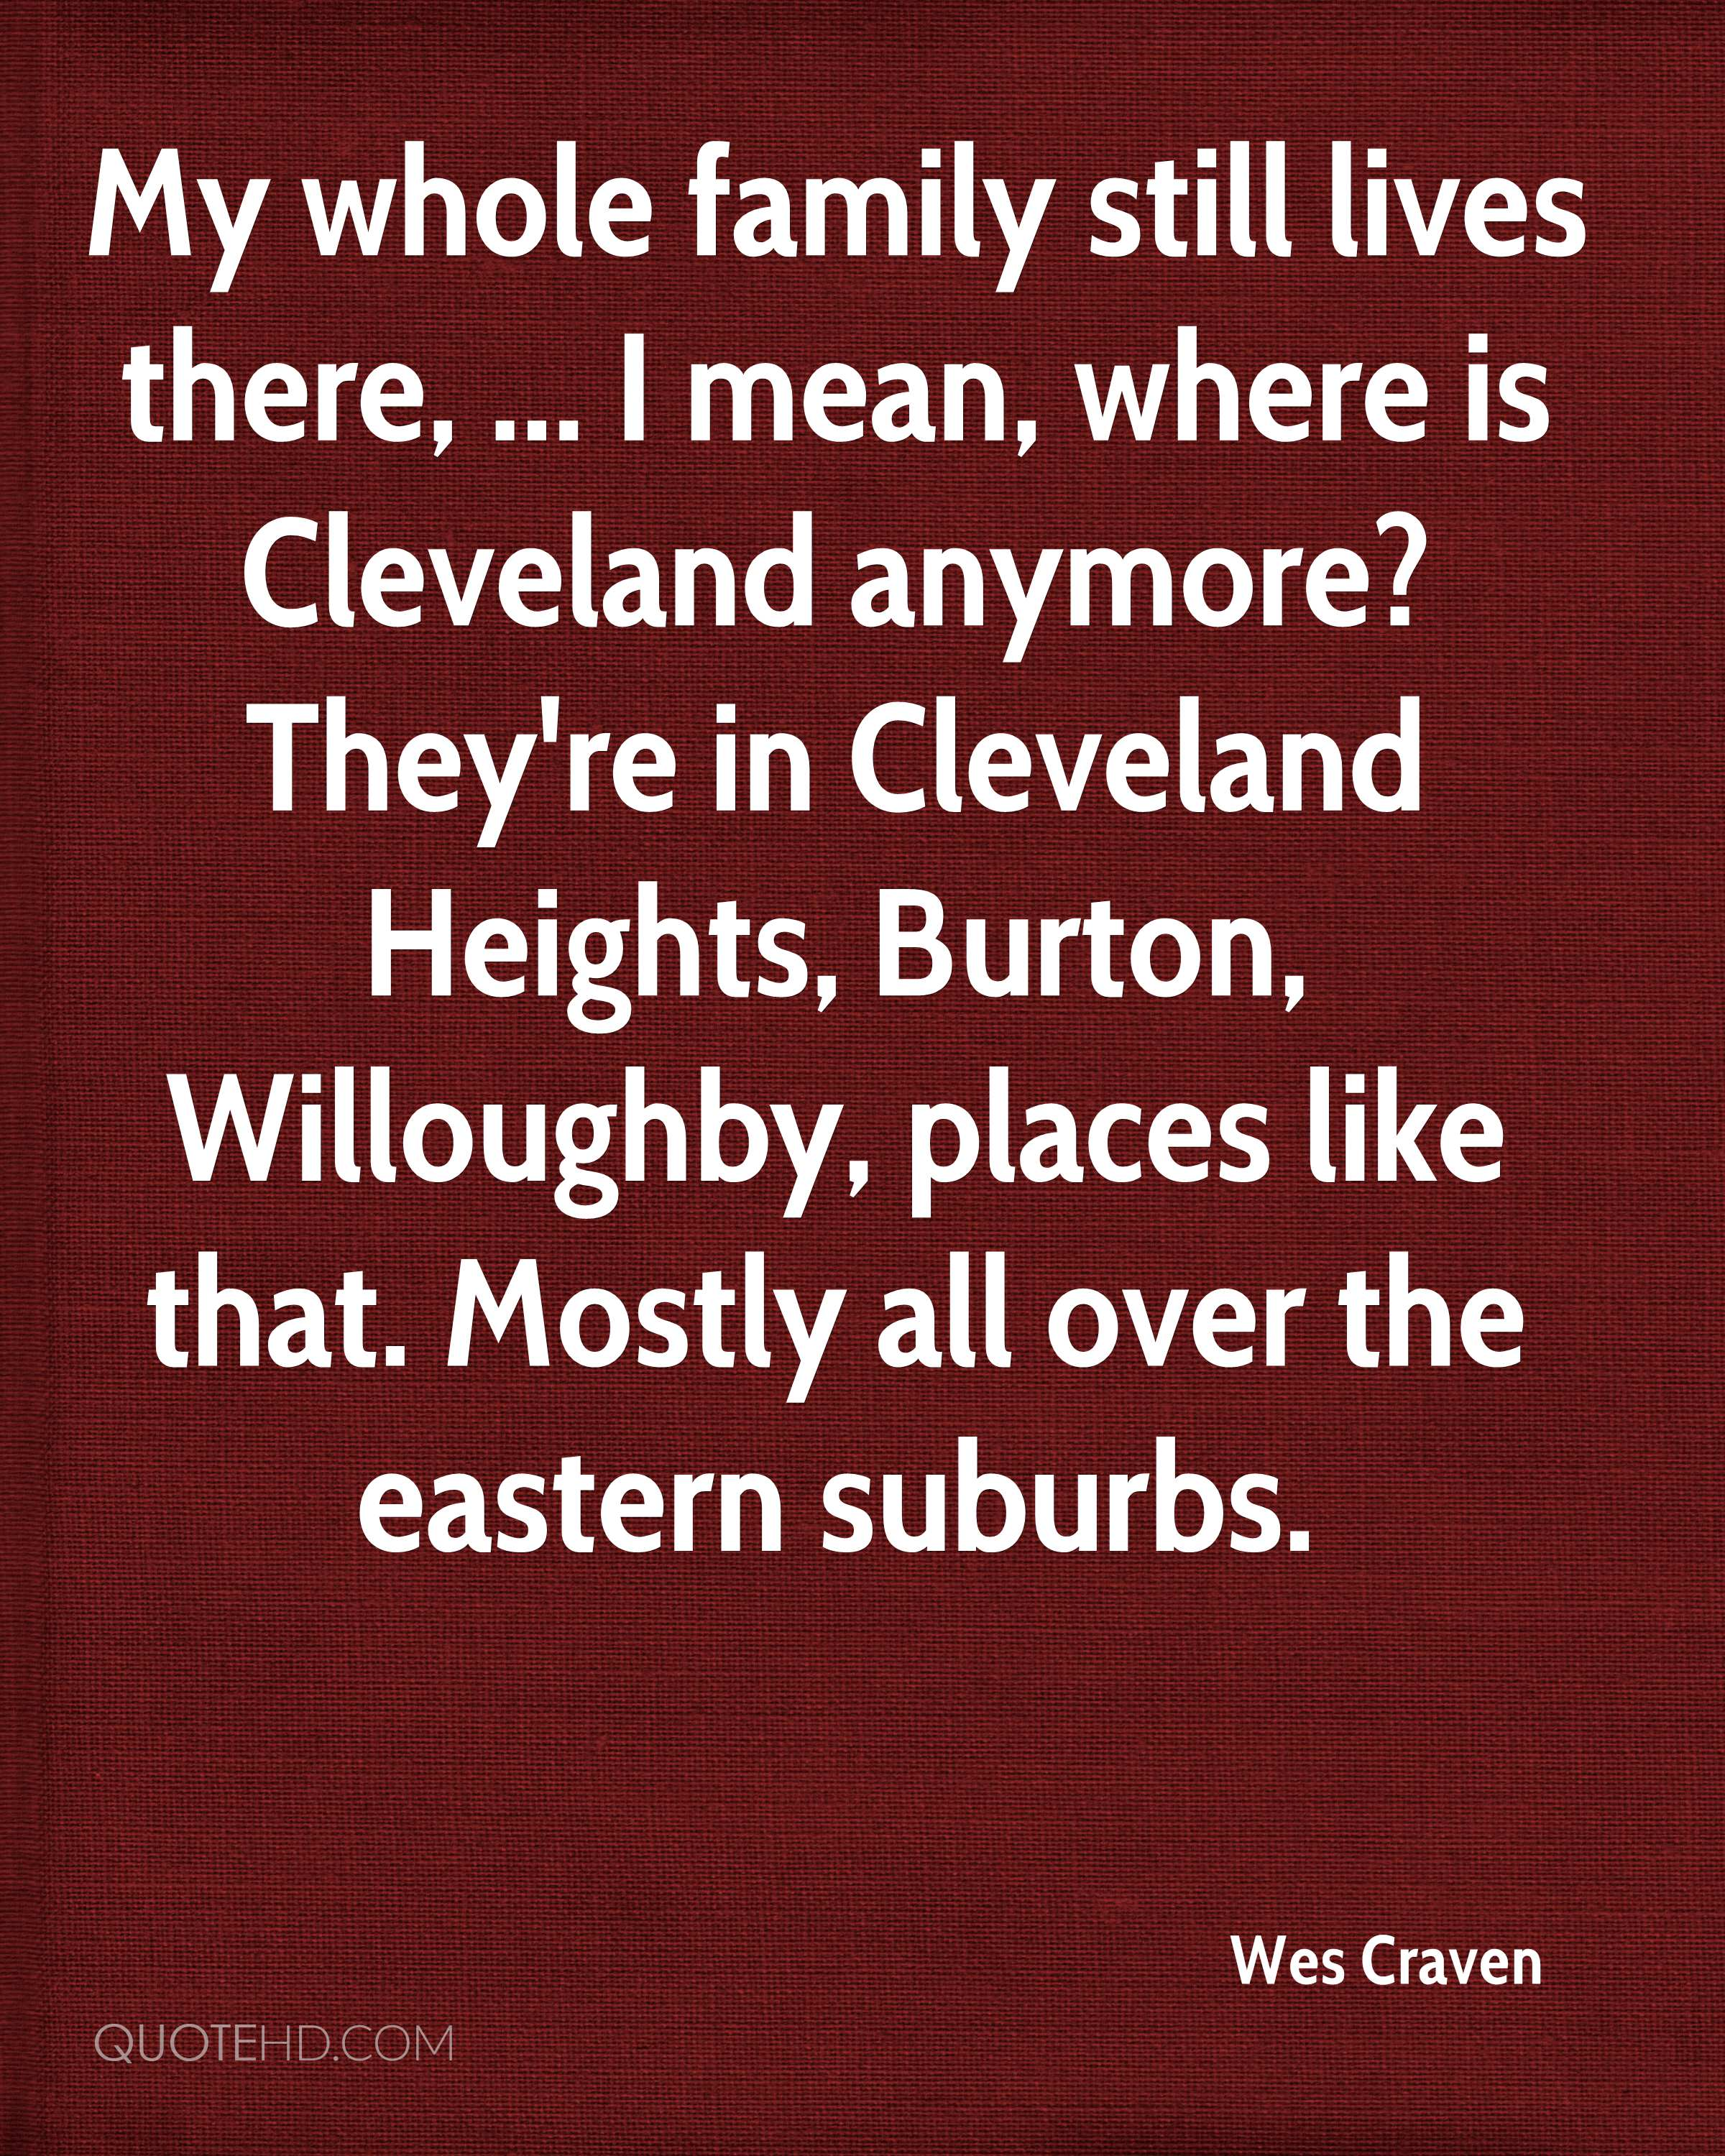 My whole family still lives there, ... I mean, where is Cleveland anymore? They're in Cleveland Heights, Burton, Willoughby, places like that. Mostly all over the eastern suburbs.